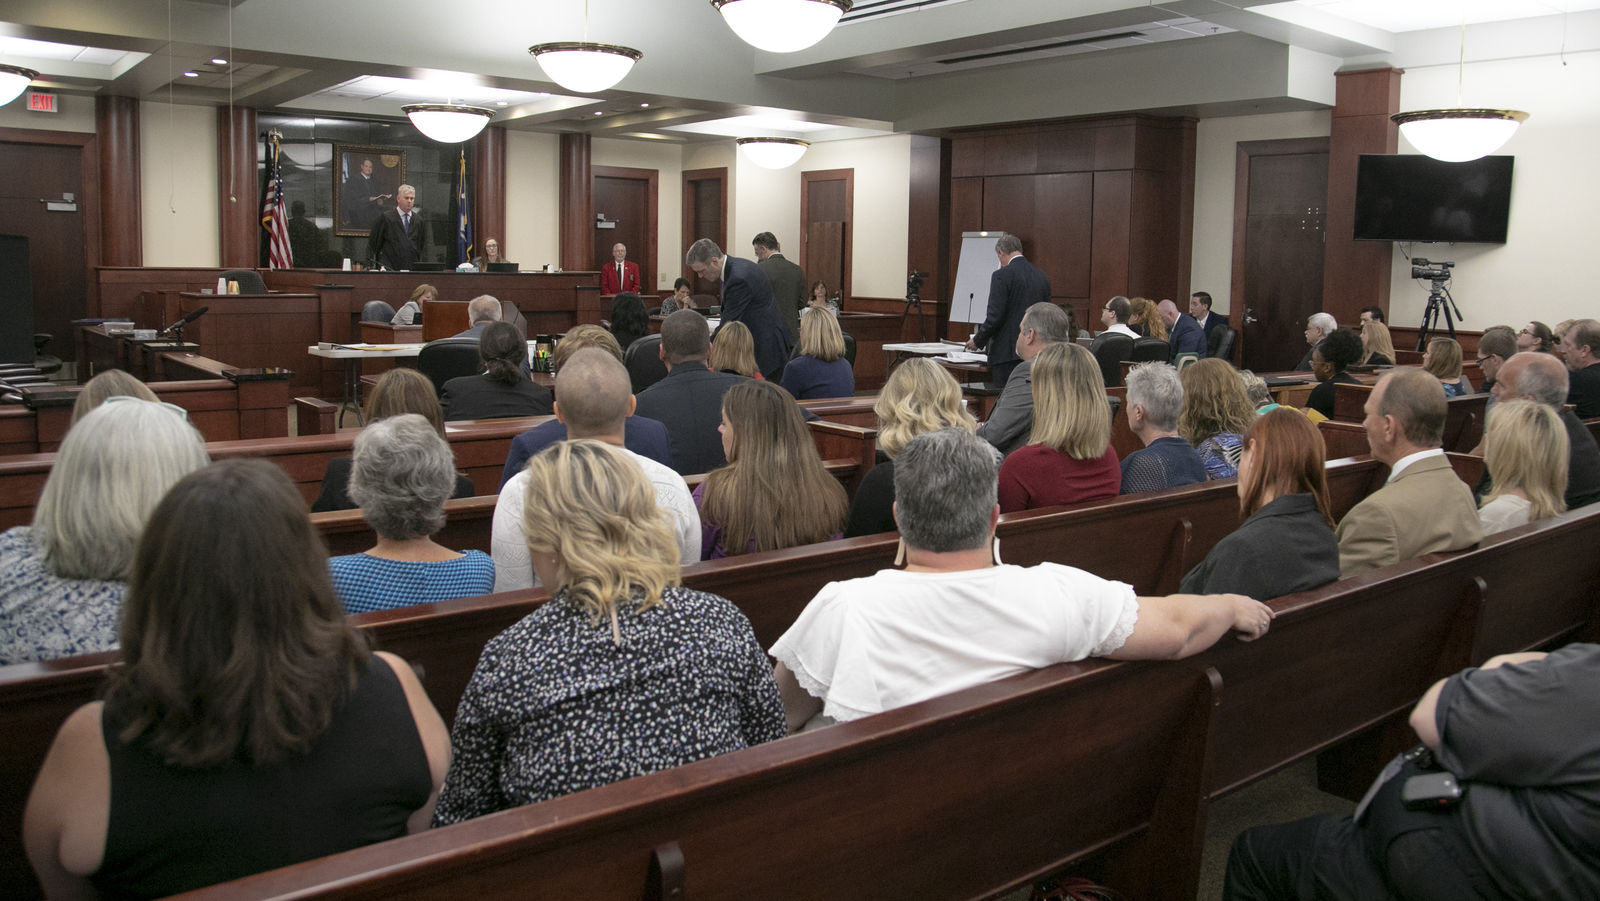 People from Saxe Gotha Elementary School fill the courtroom during the sentencing phase of the trial of Timothy Jones Jr. in Lexington, S.C. on Thursday, June 13, 2019. (Tracy Glantz/The State via AP, Pool)